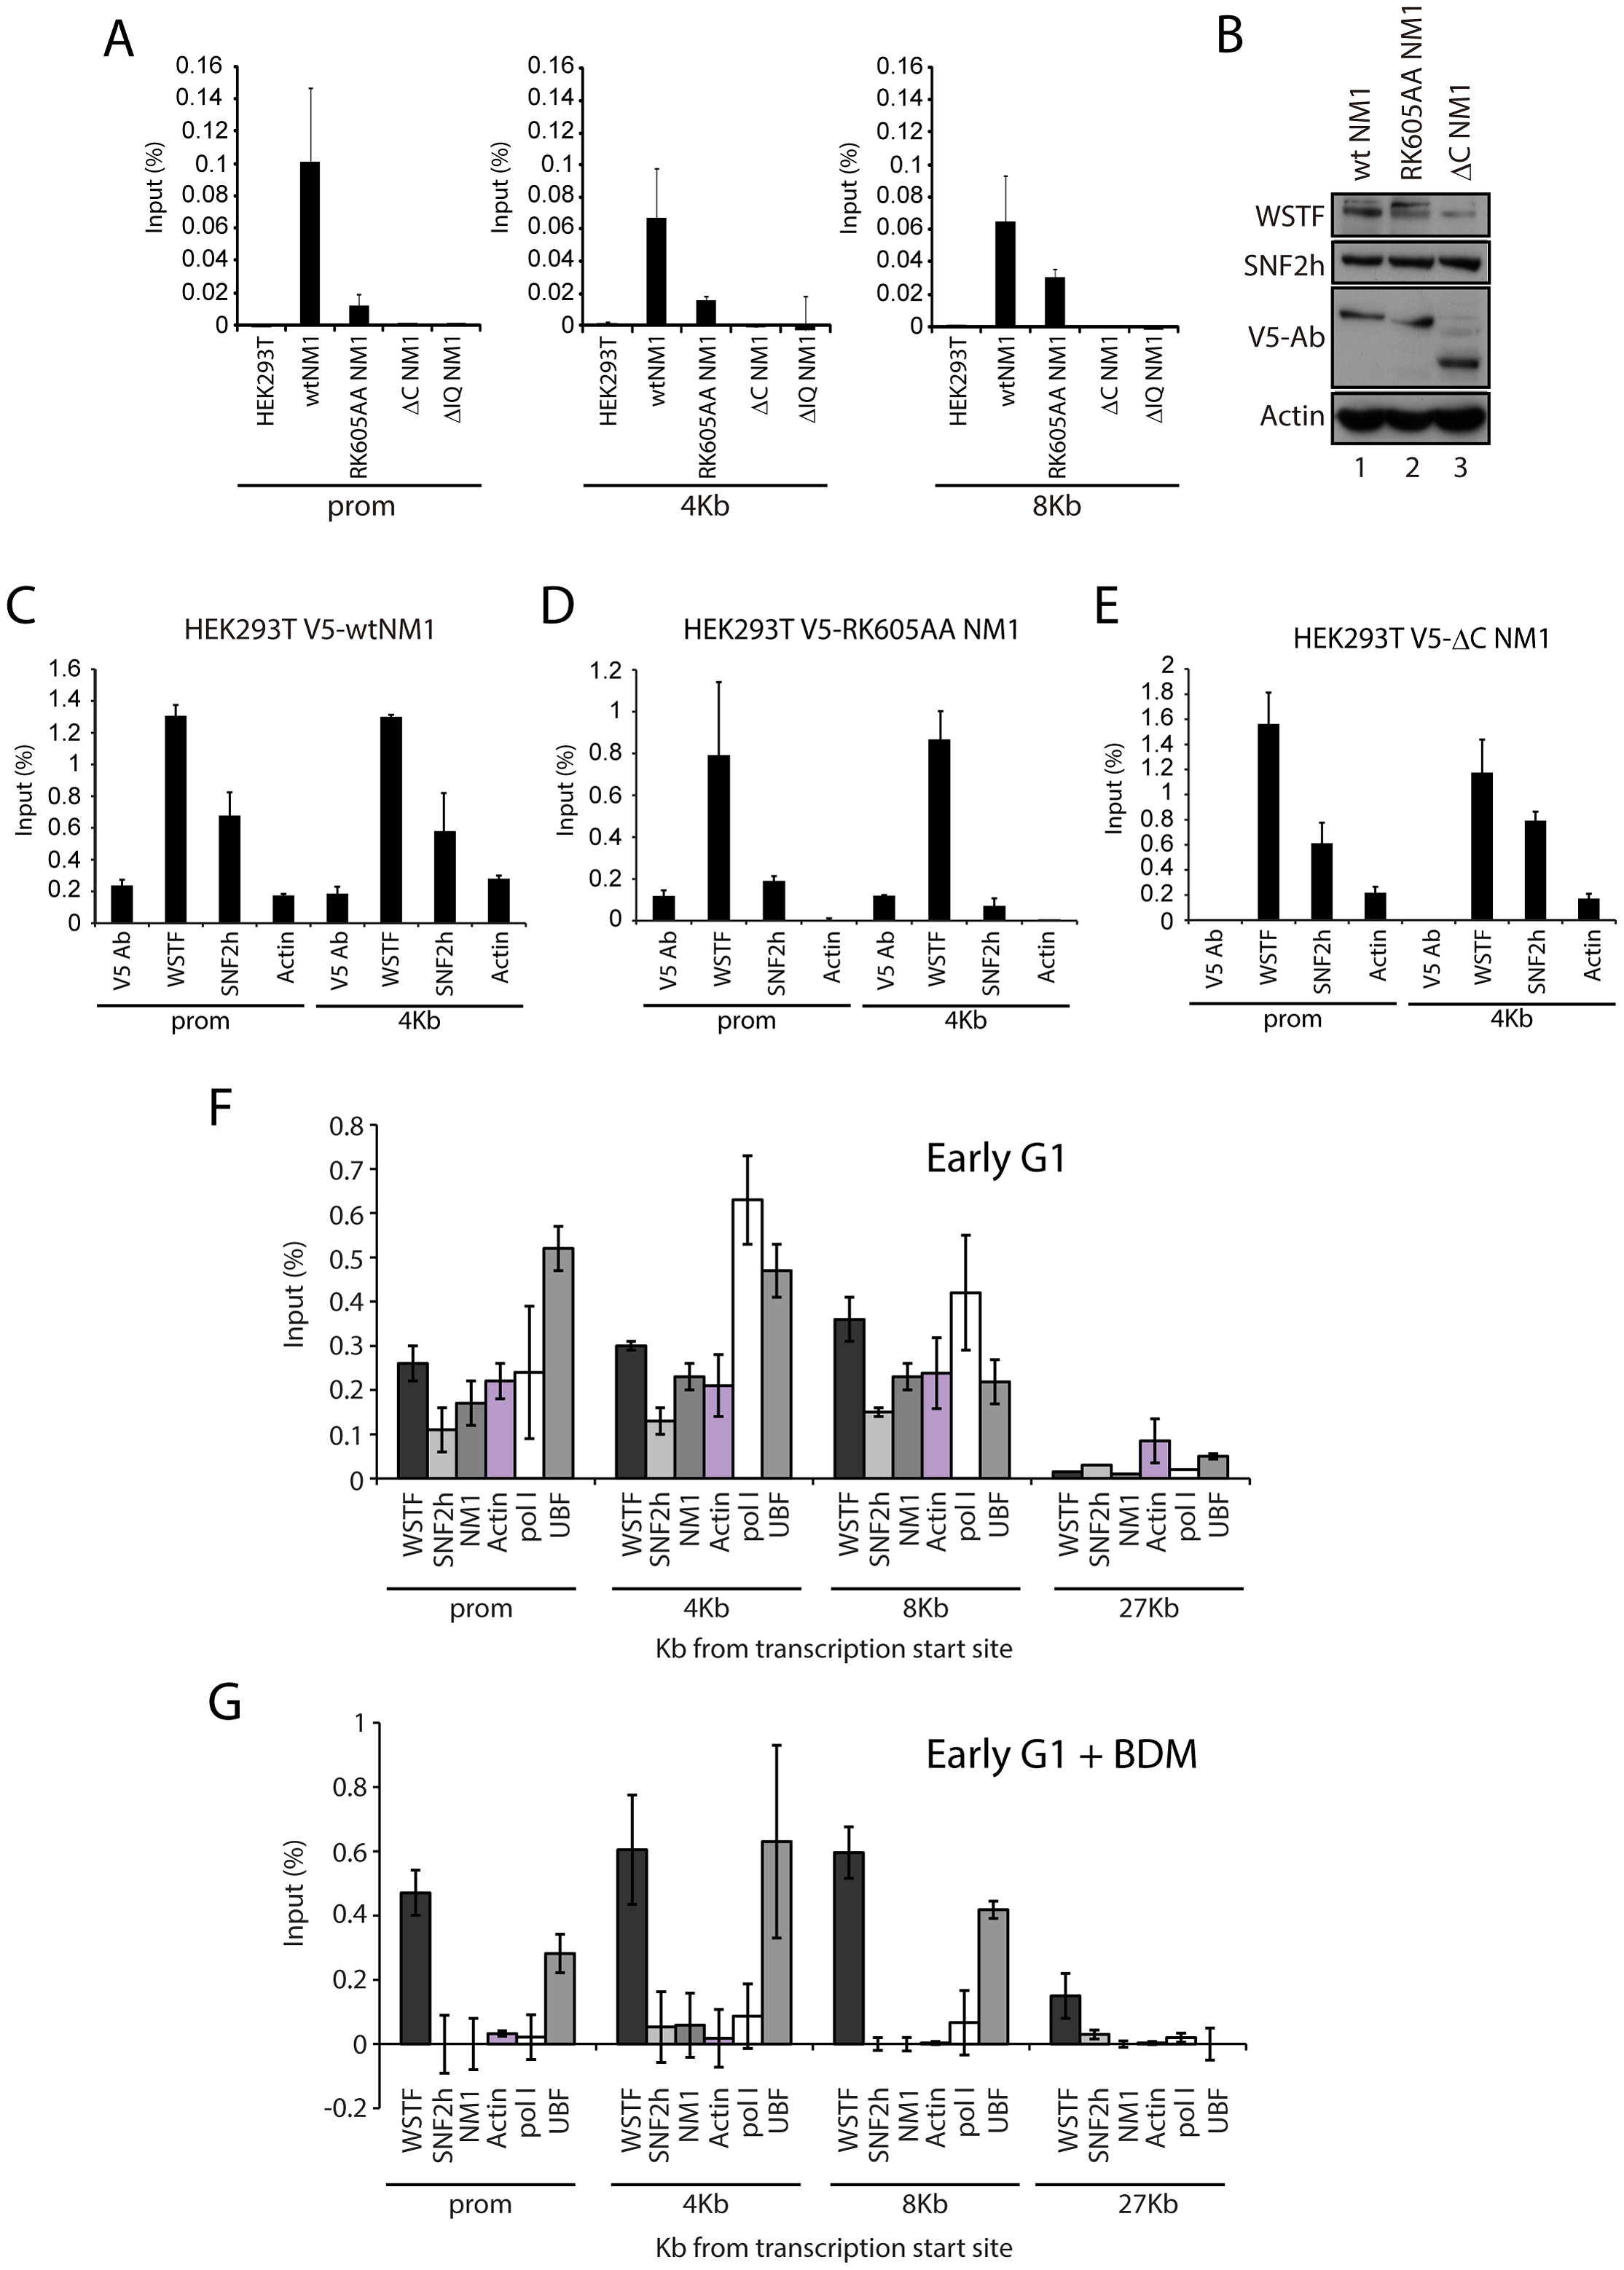 NM1 C-terminus and intact motor function are required for the association of NM1, SNF2h, and actin with rRNA genes.